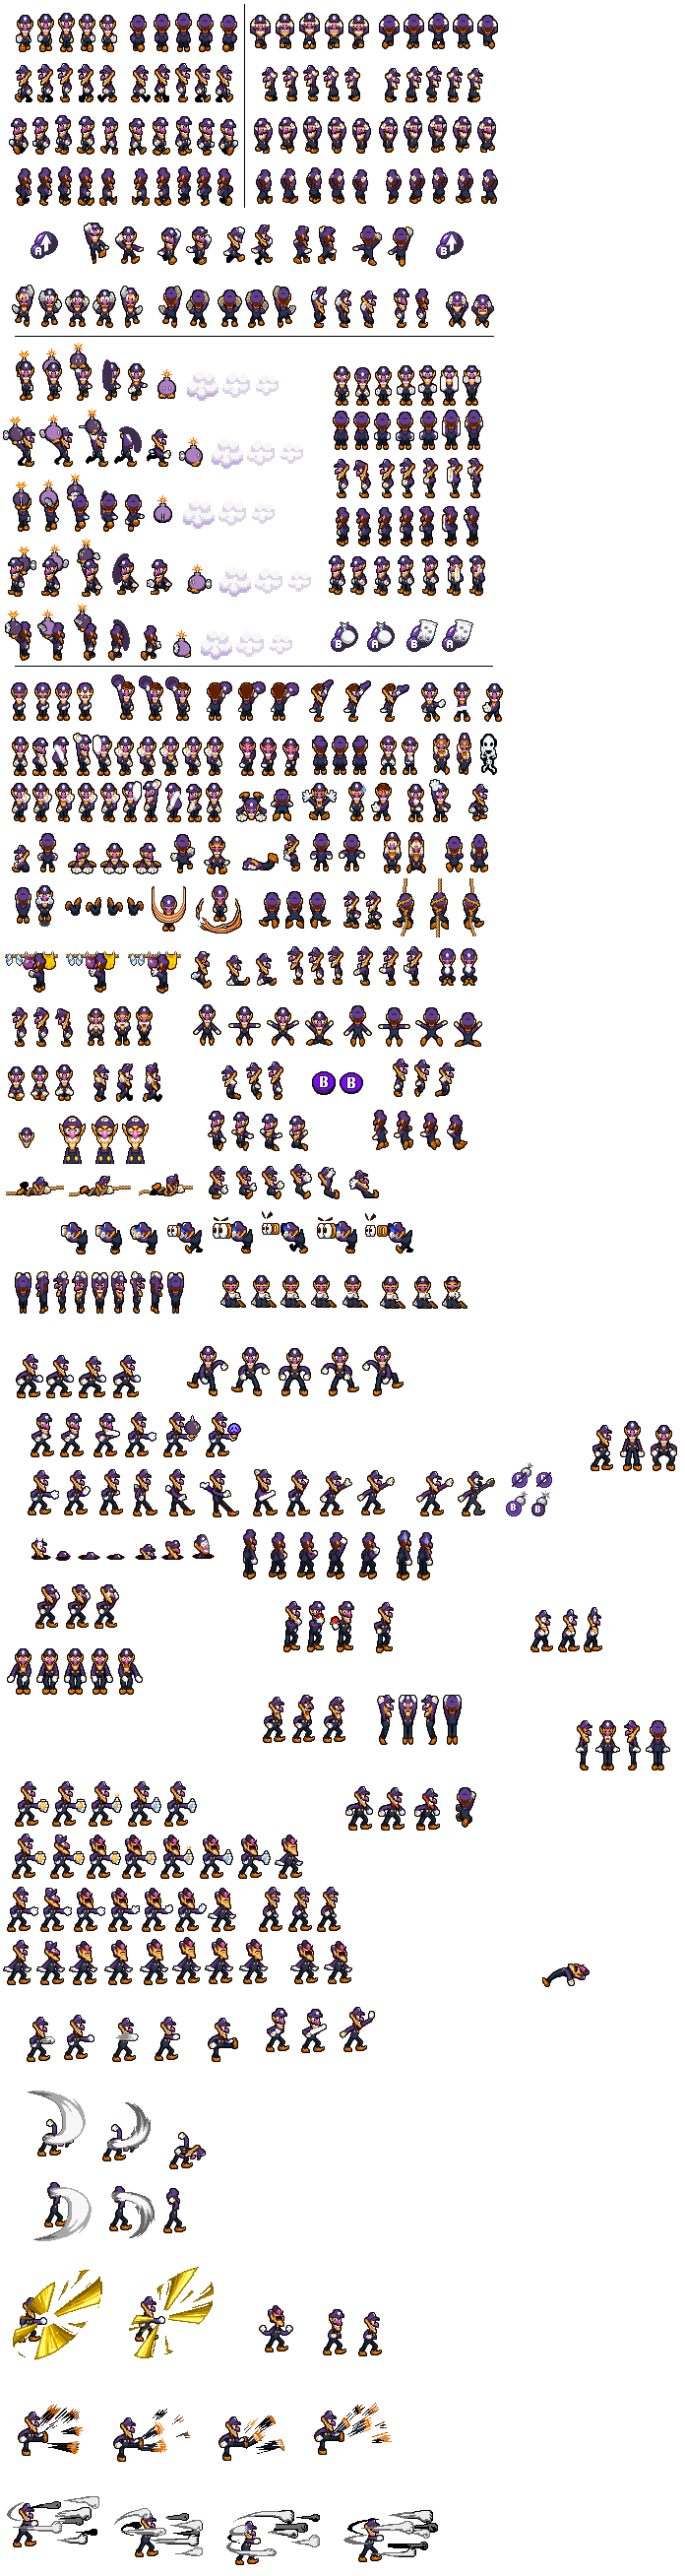 Waluigi Sprite Sheet (SMB Heroes of the Stars) by KingAsylus91